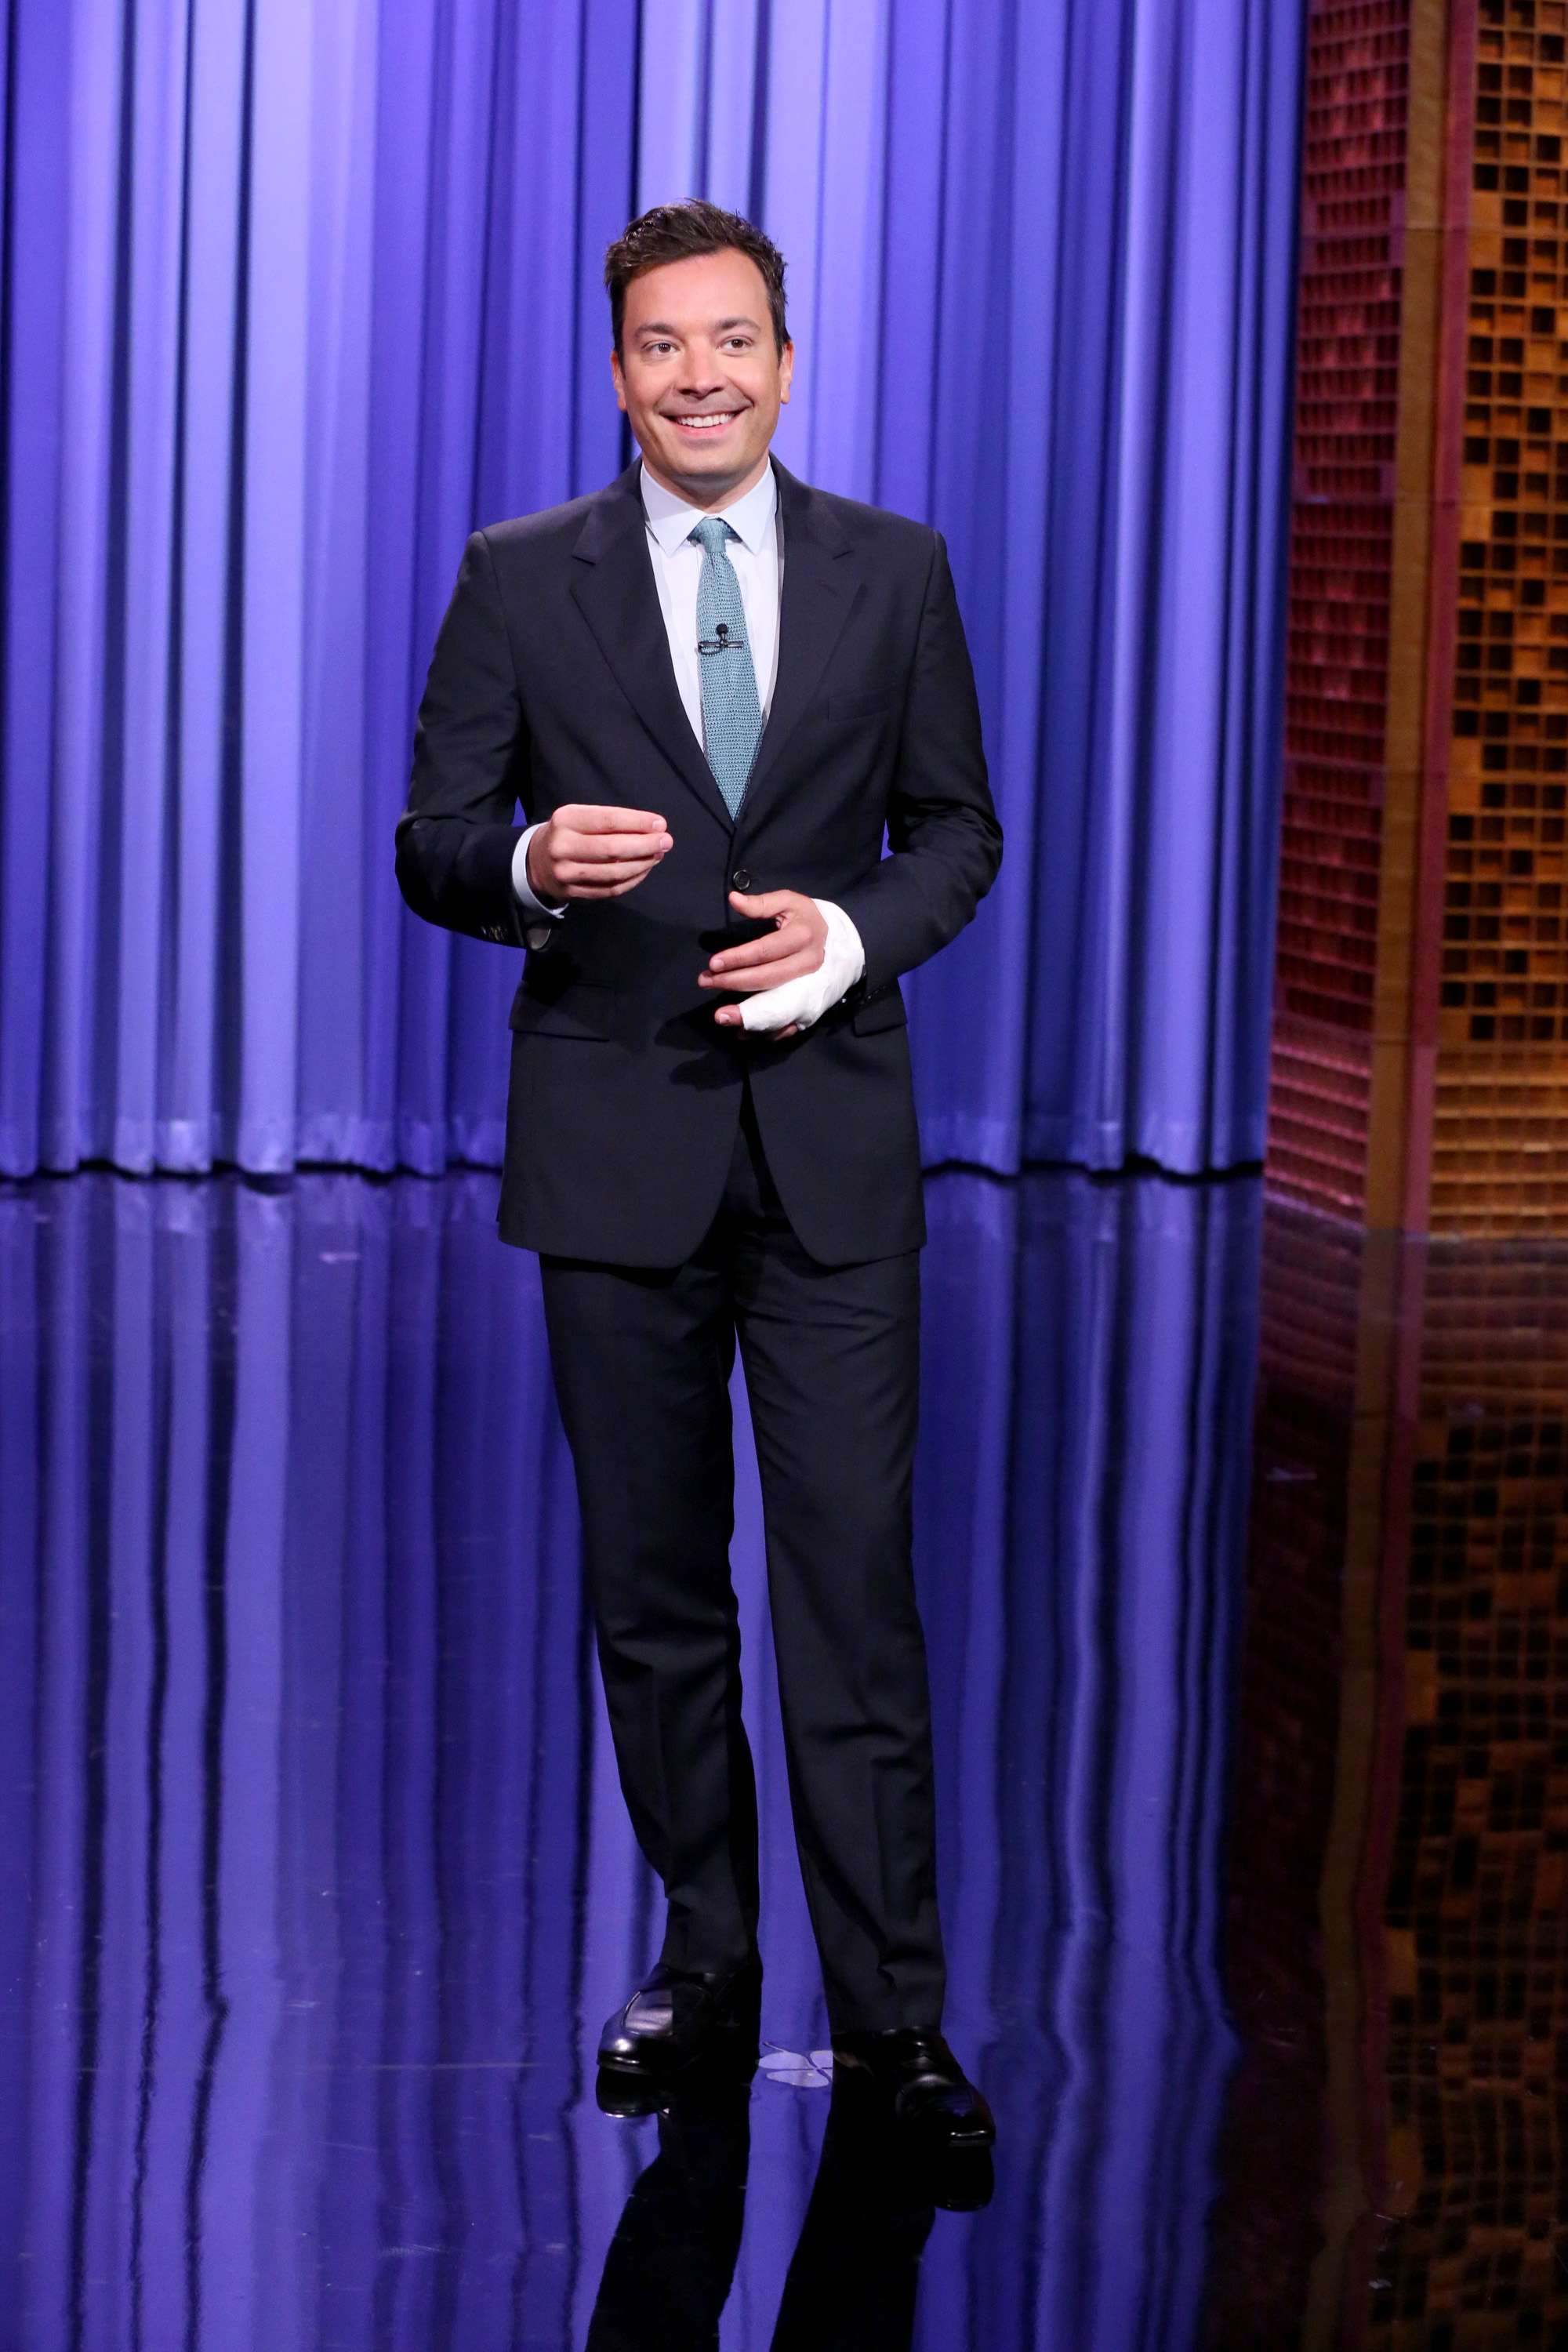 Jimmy Fallon during the monologue on July 13, 2015